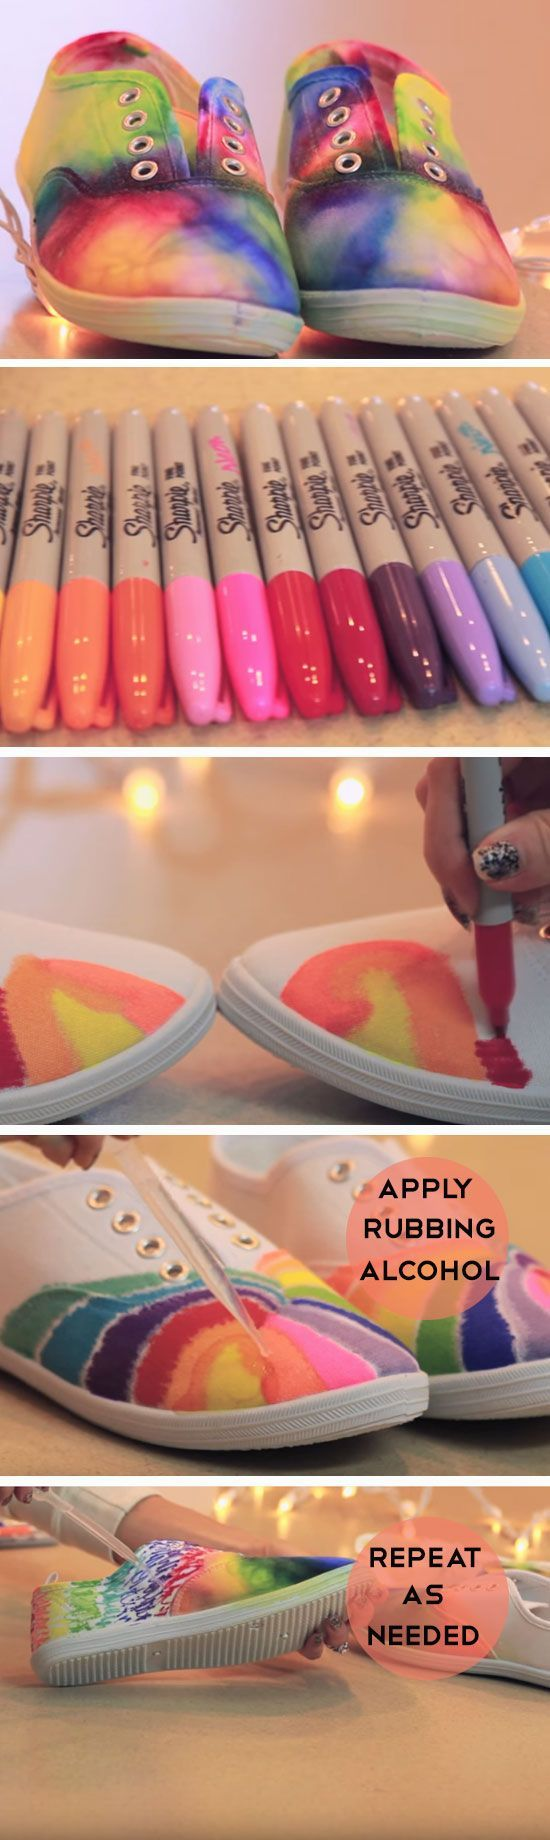 Sharpie Tie Dye Shoesr | 35 + DIY Christmas Gifts for Teen Girls | Easy Summer Crafts for Teens to Make